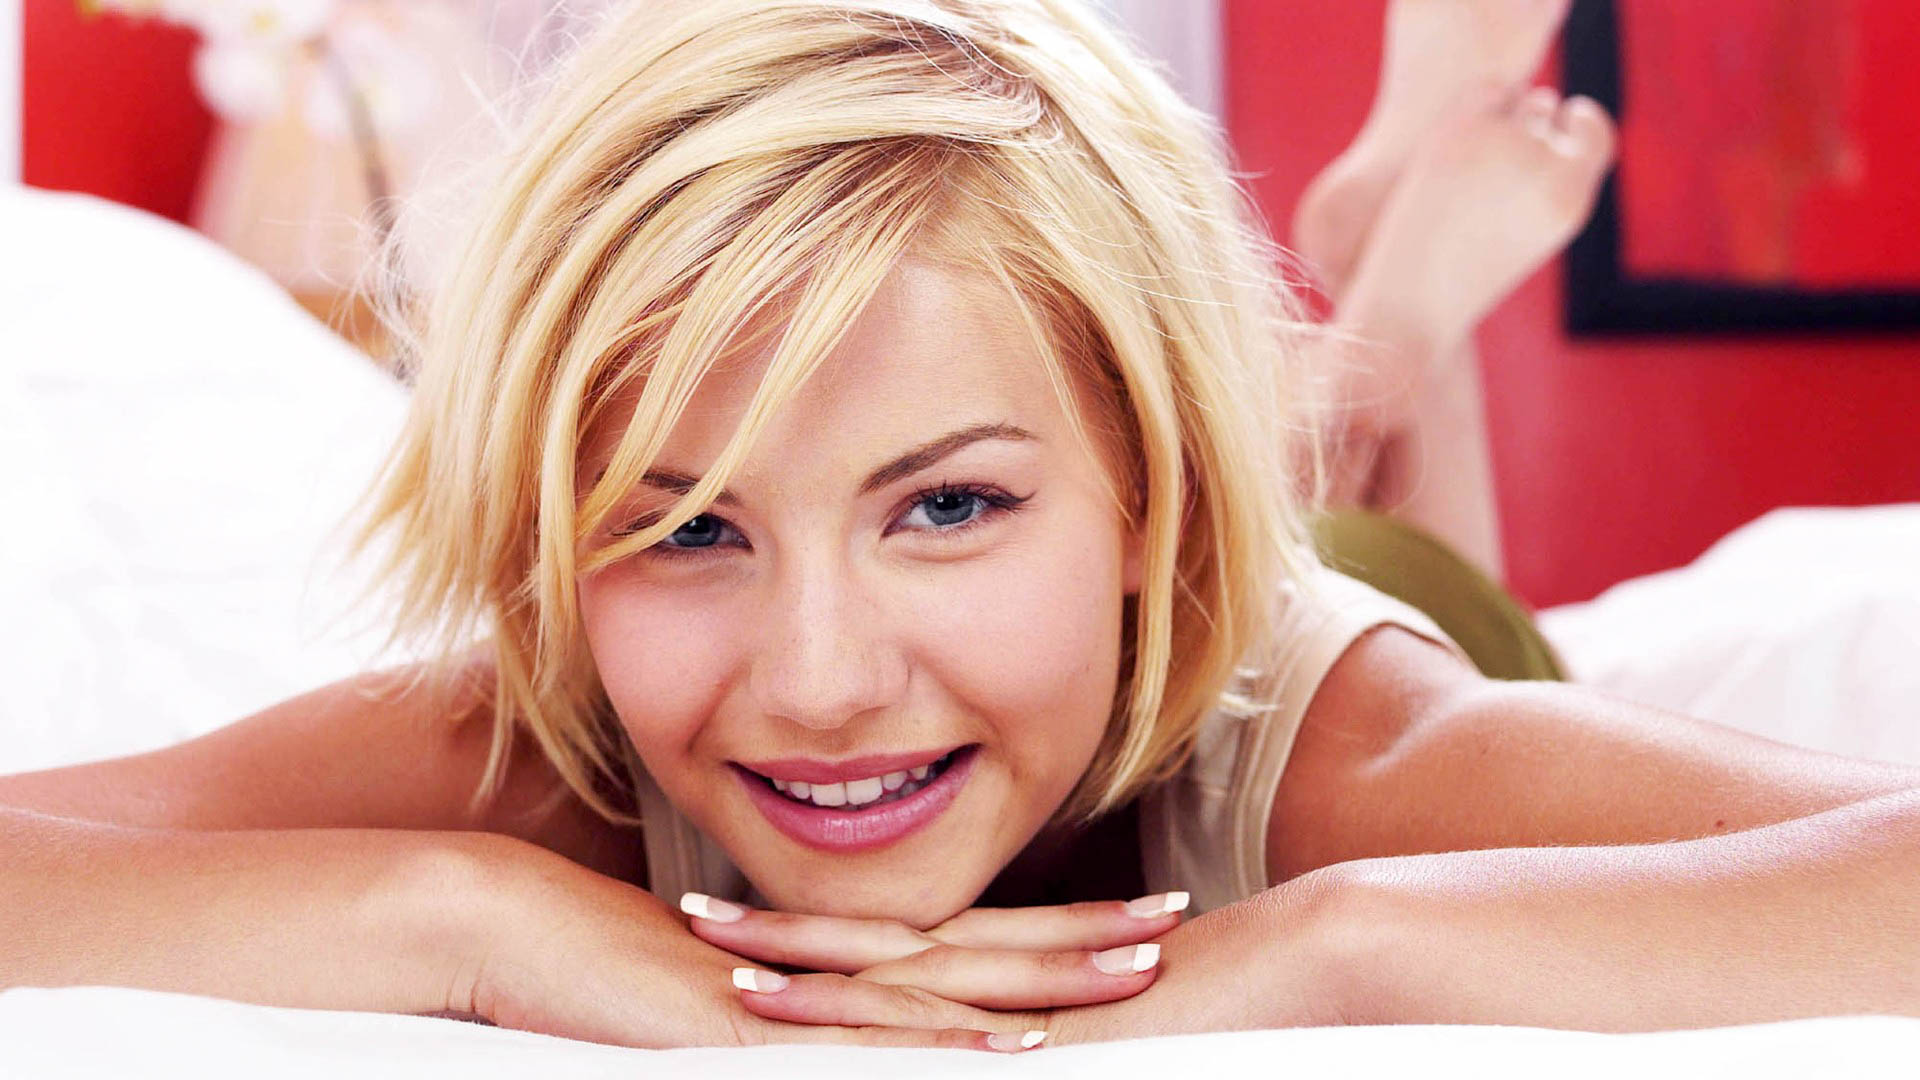 Cutest Elisha Cuthbert Sexy Hd Wallpapers Images High Quality